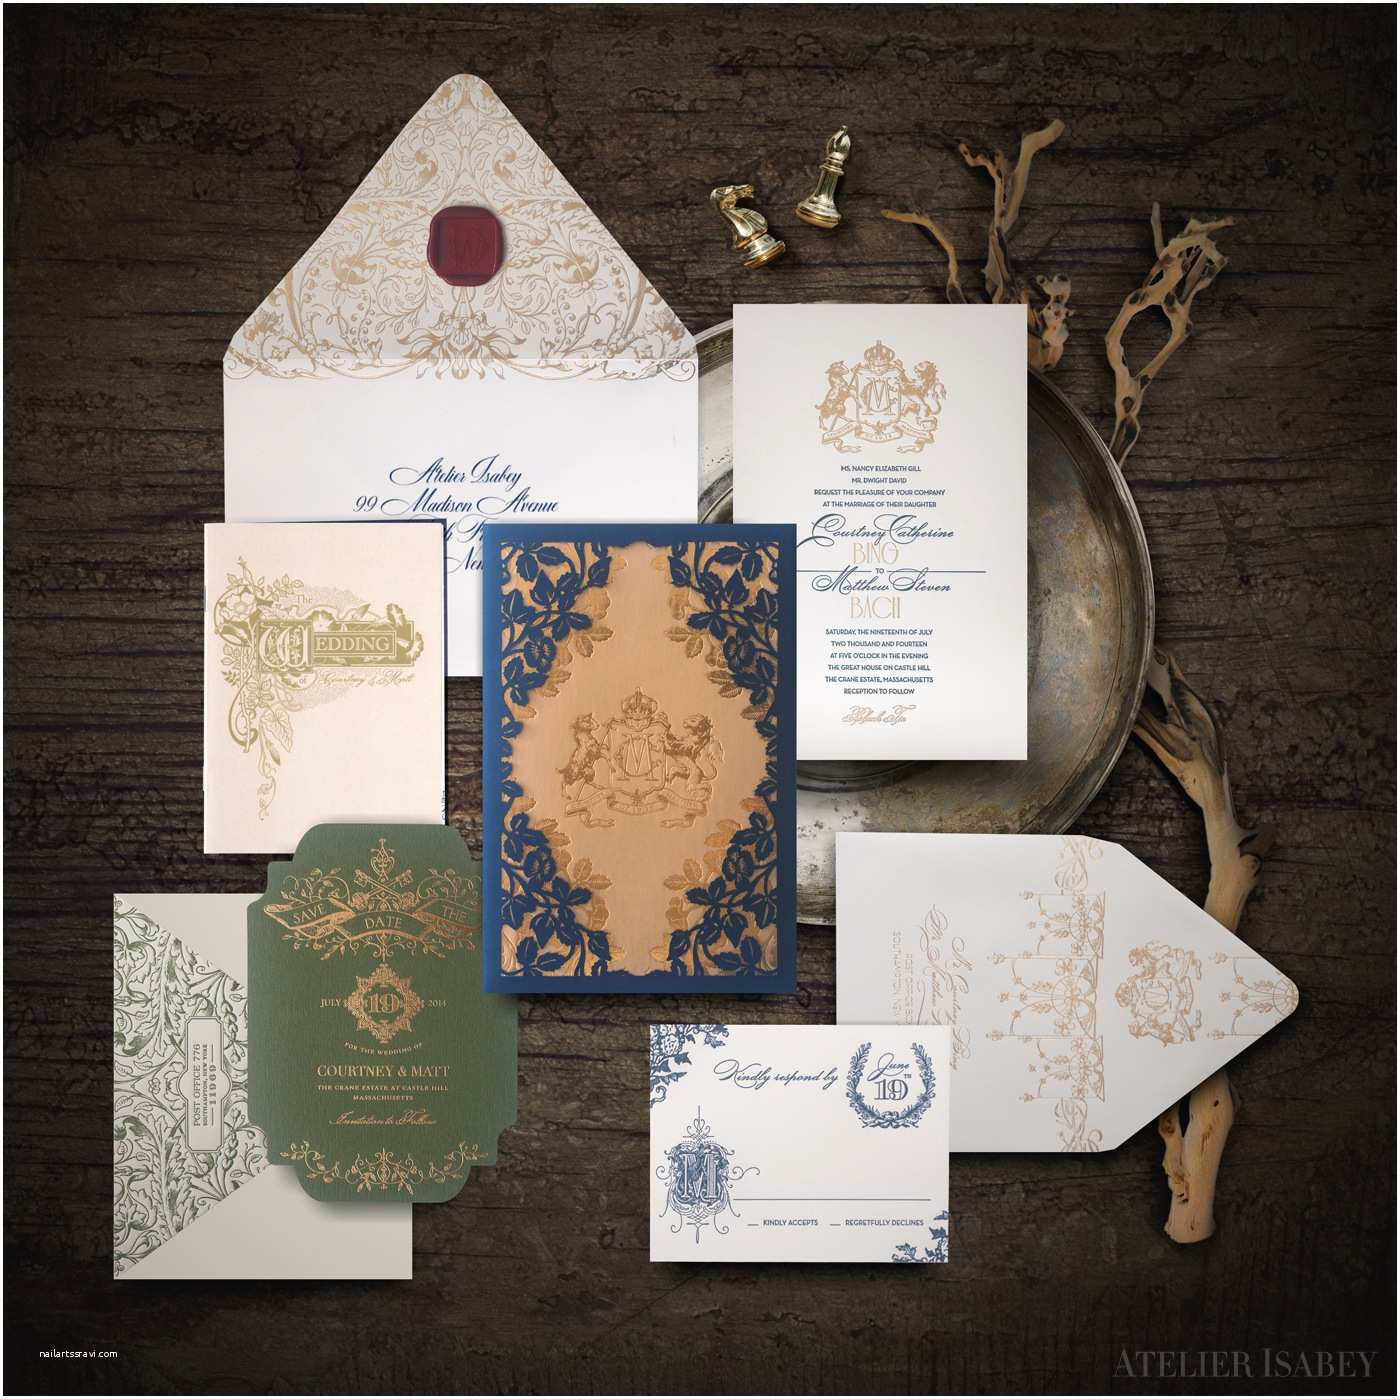 Game Of Thrones Wedding Invitations Game Of Thrones Wedding Invitations On Behance